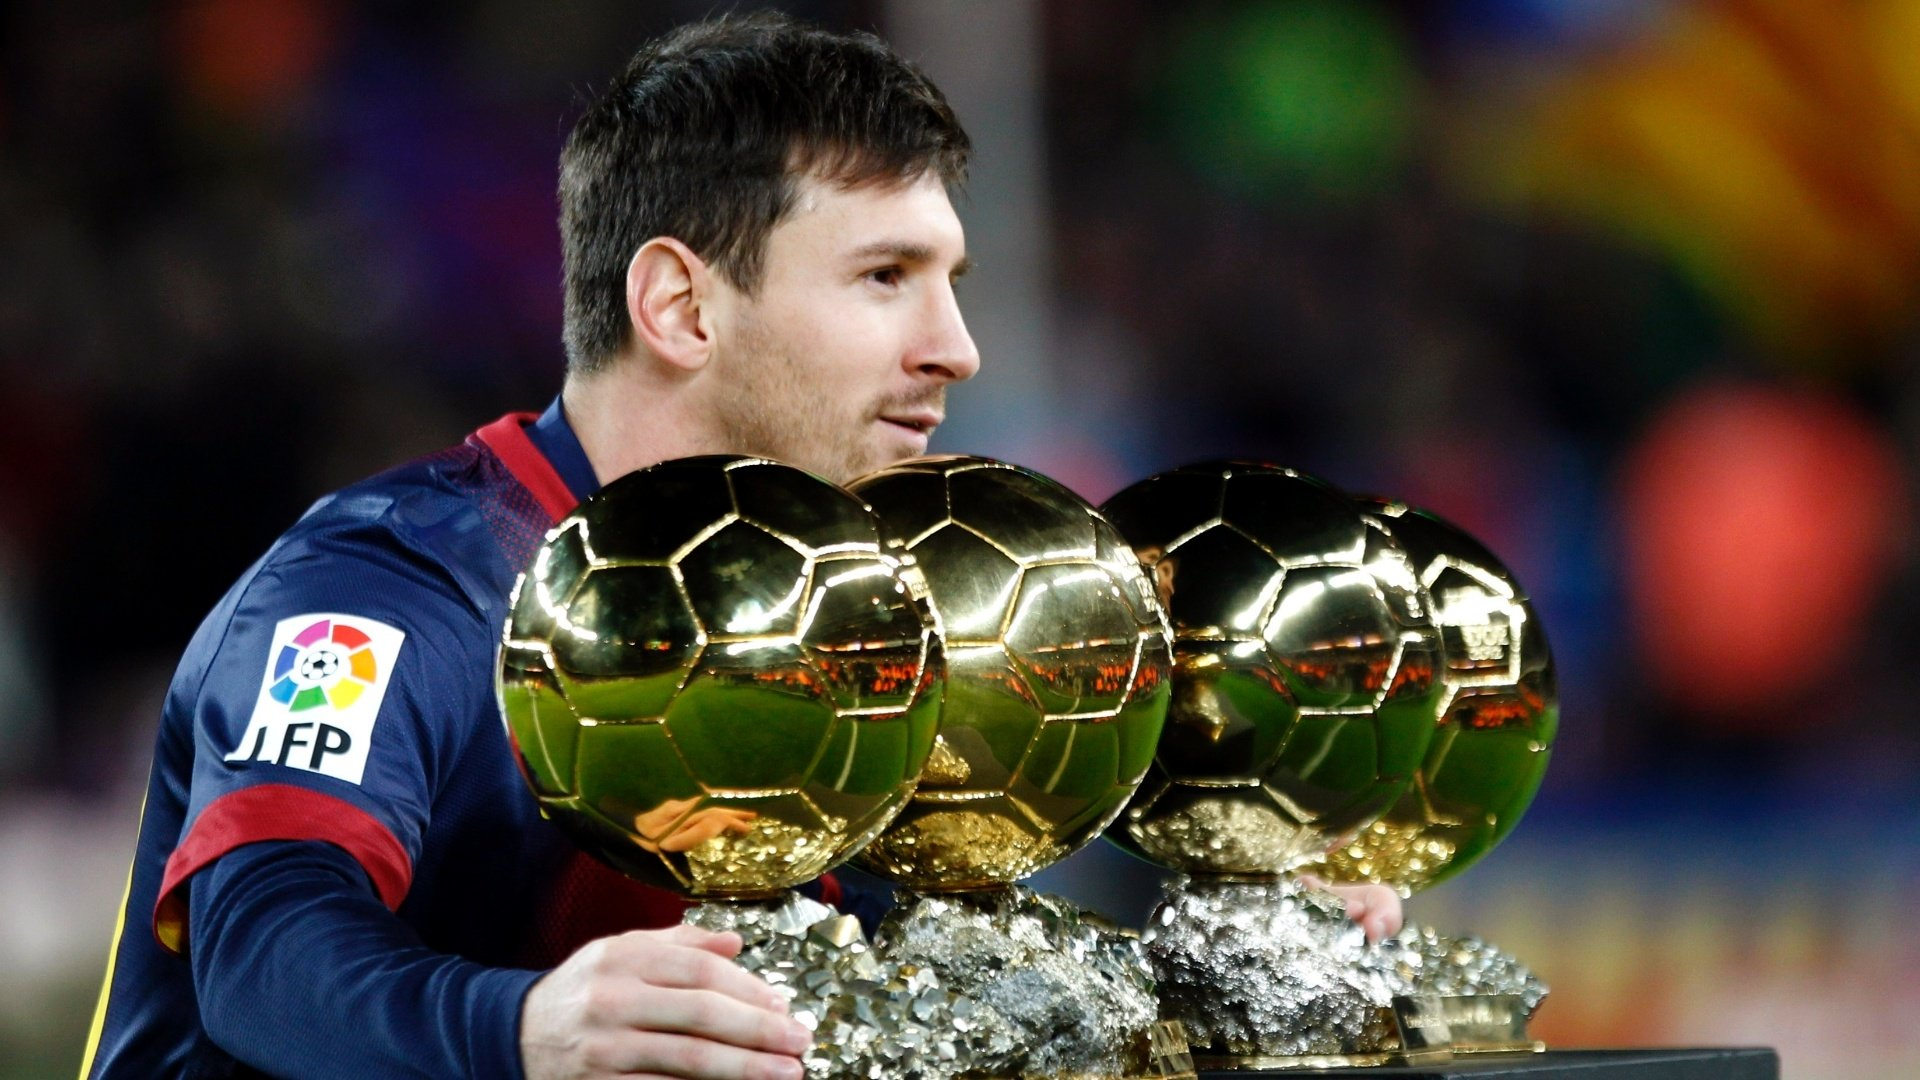 Download Messi Wallpaper Free Download Gallery